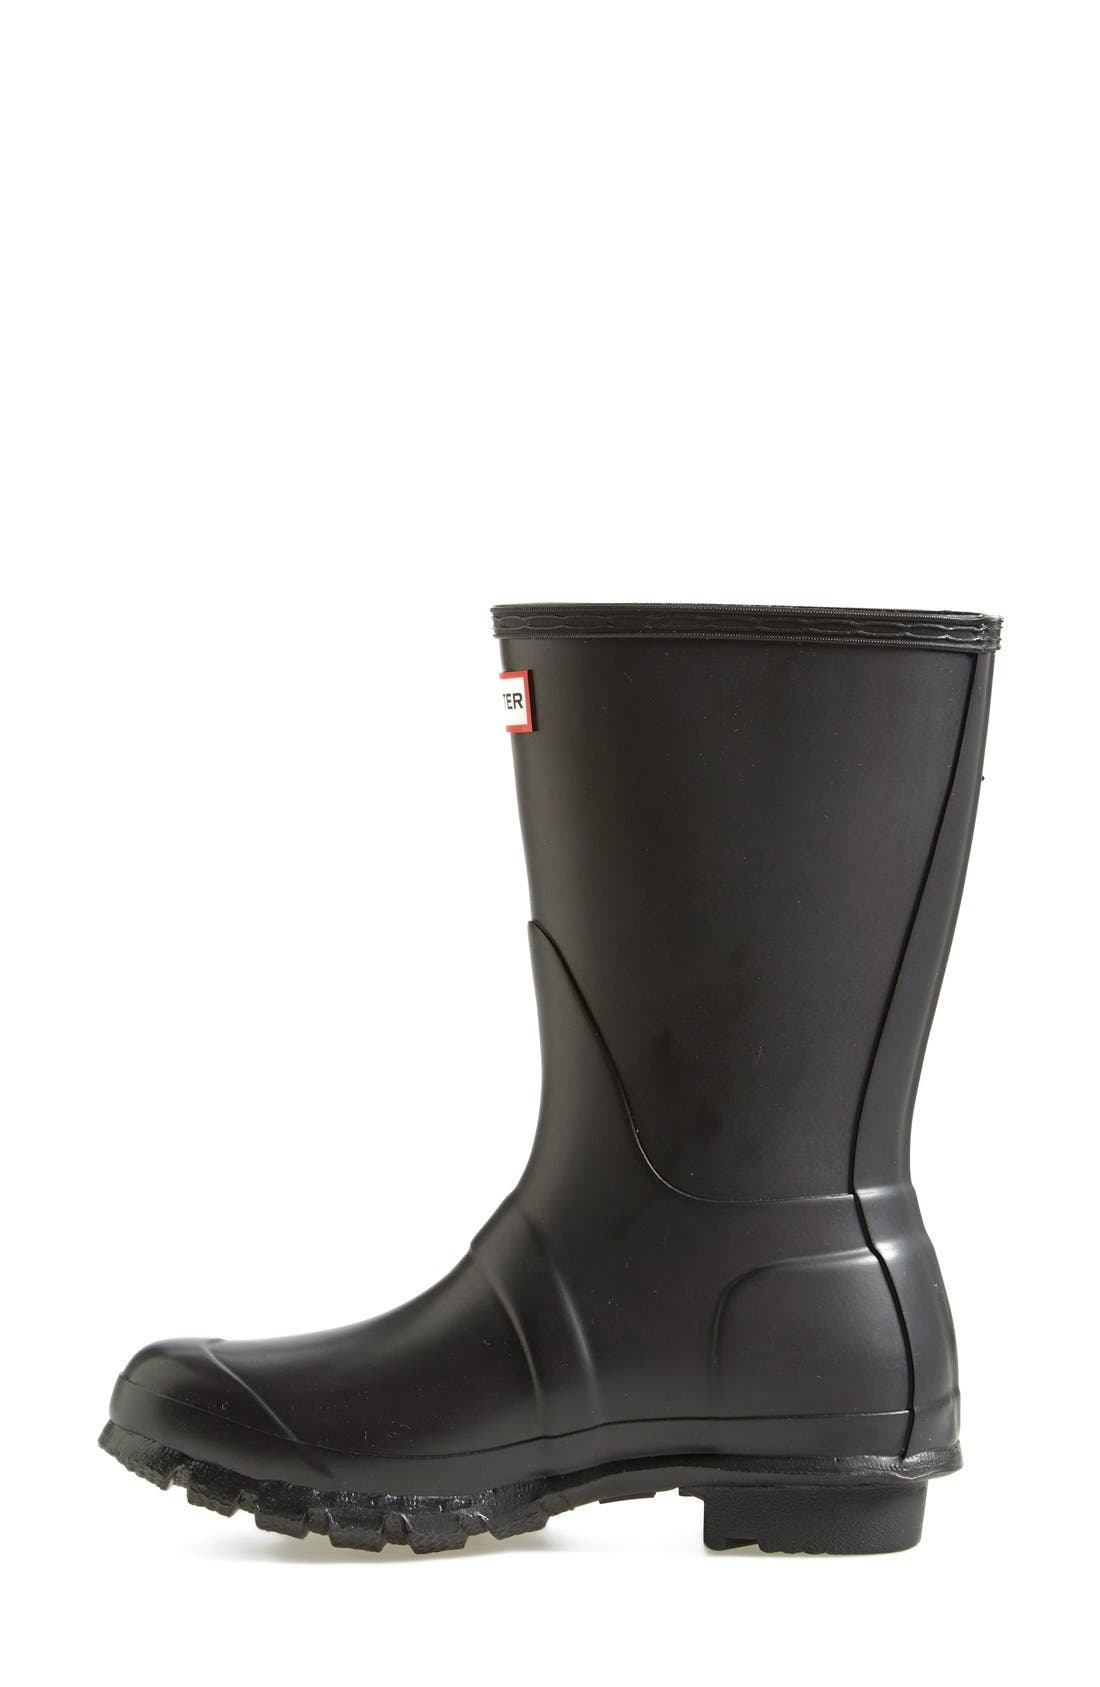 HUNTER, Original Short Waterproof Rain Boot, Alternate thumbnail 2, color, BLACK MATTE